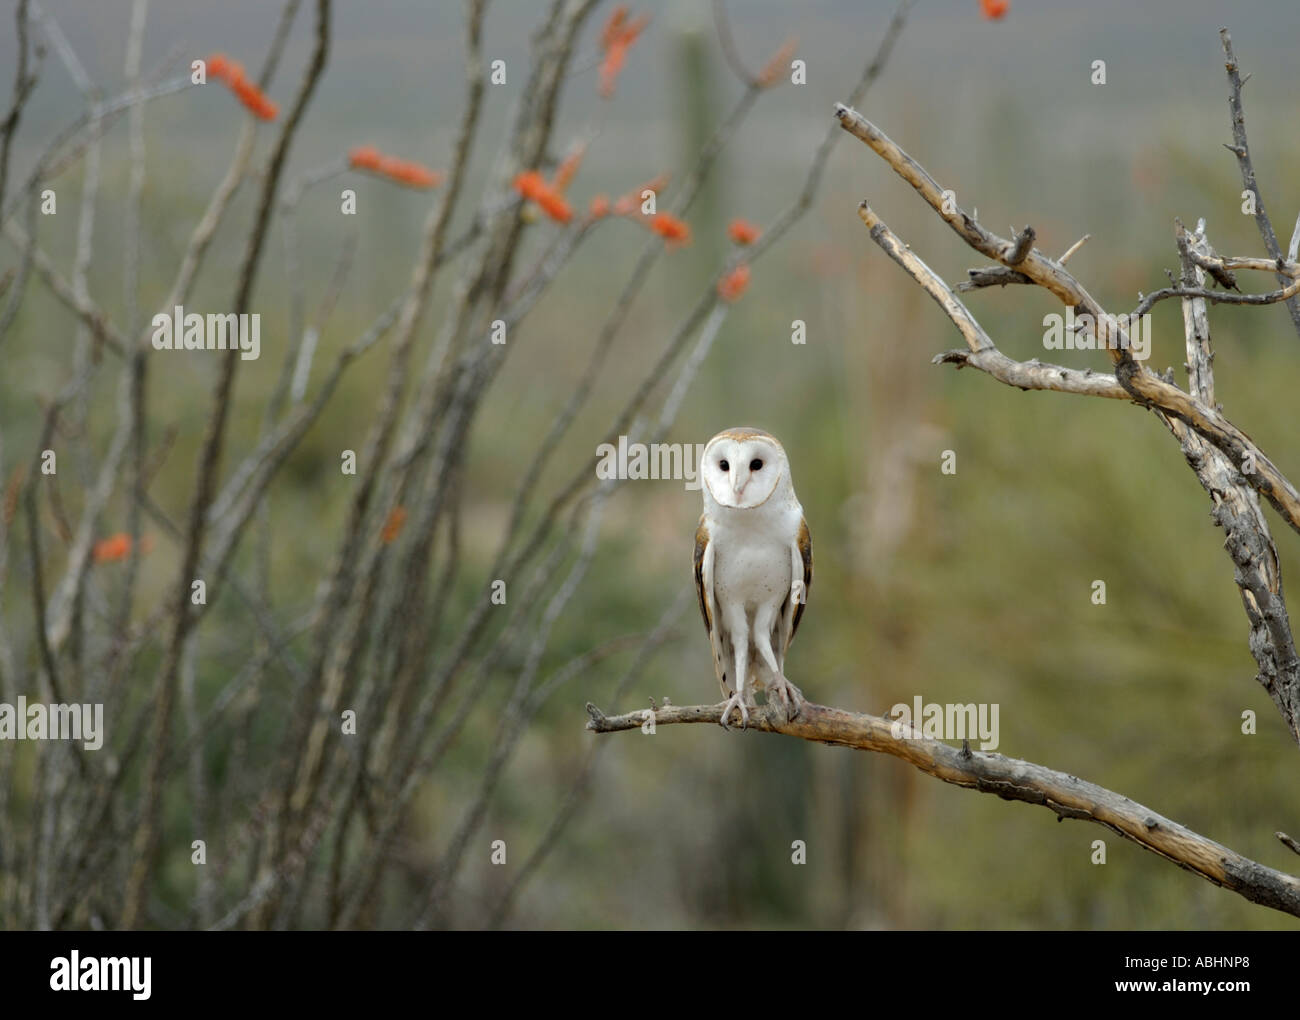 Barn owl, Tyto alba, perched on branch, looking at camera - Stock Image